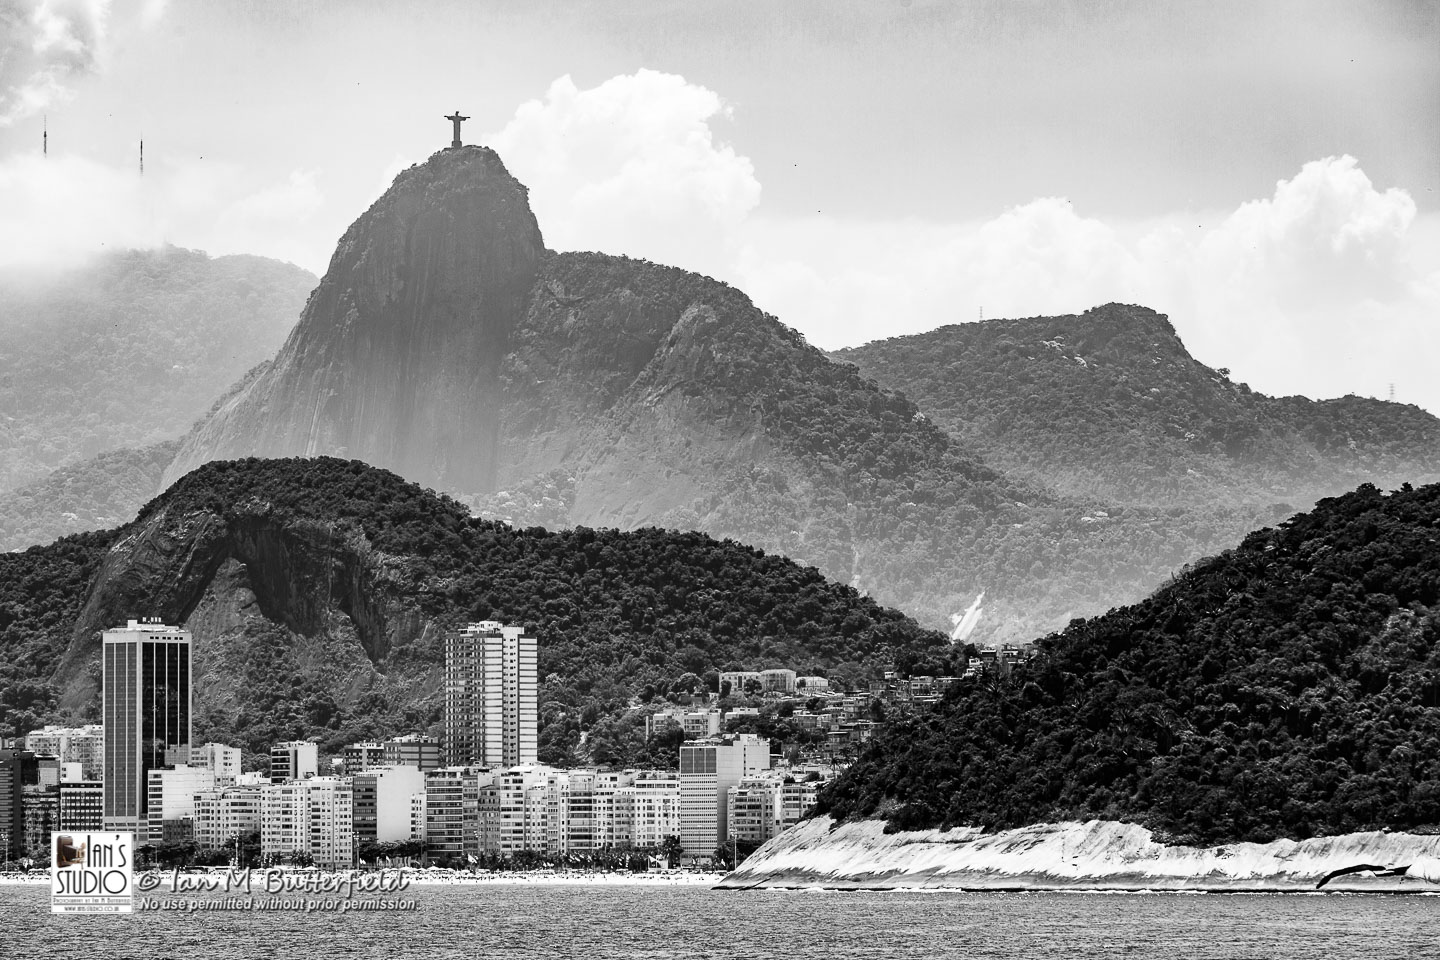 ACADEMY BITE: Lessons from the South America Cruise #21 – Christ the Redeemer statue on Corcovado Mountain seen from Guanabara Bay